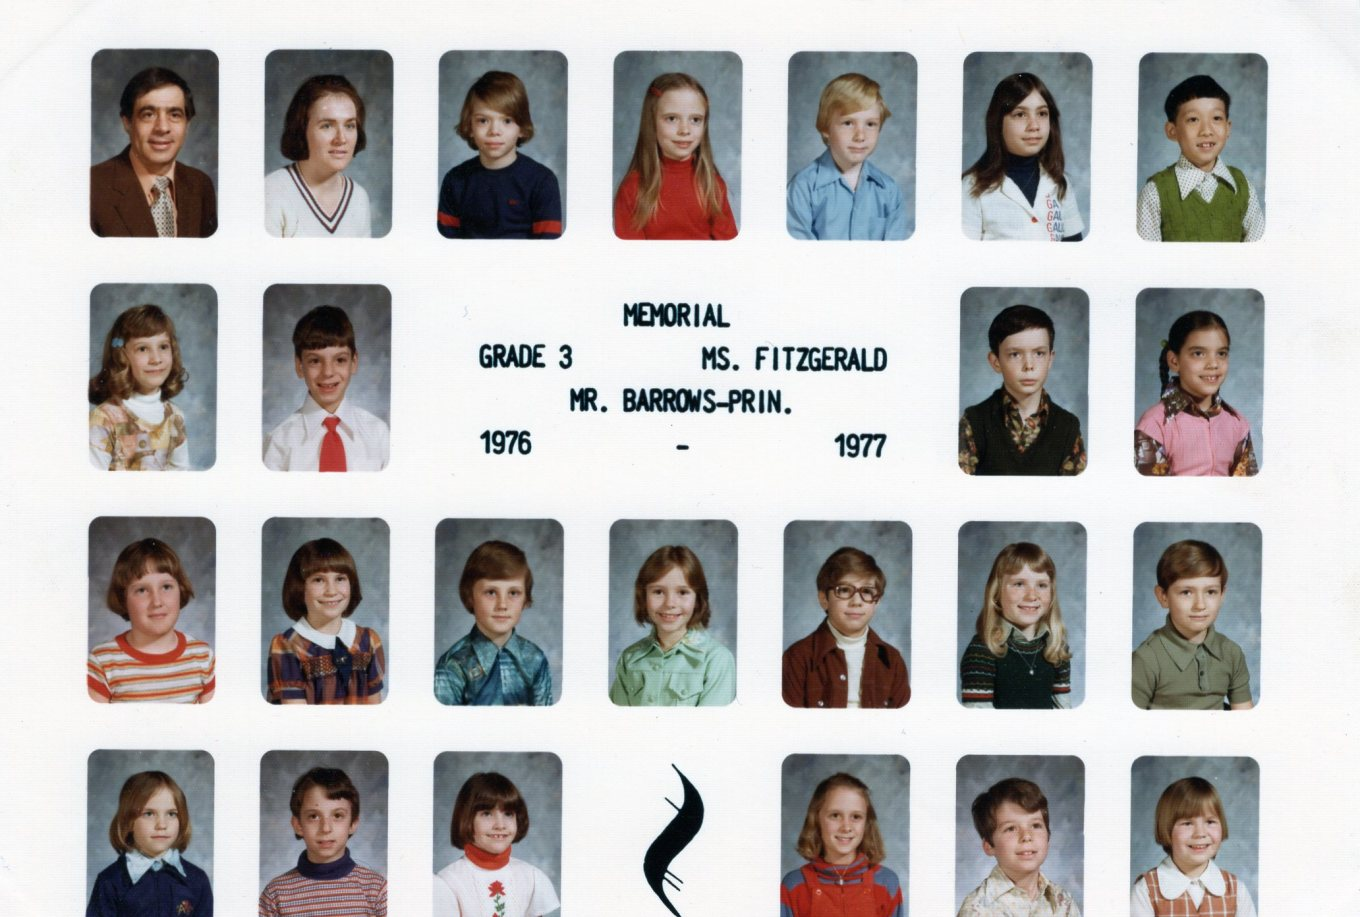 1976 Memorial School Burlington MA Ms. Fitzgerald